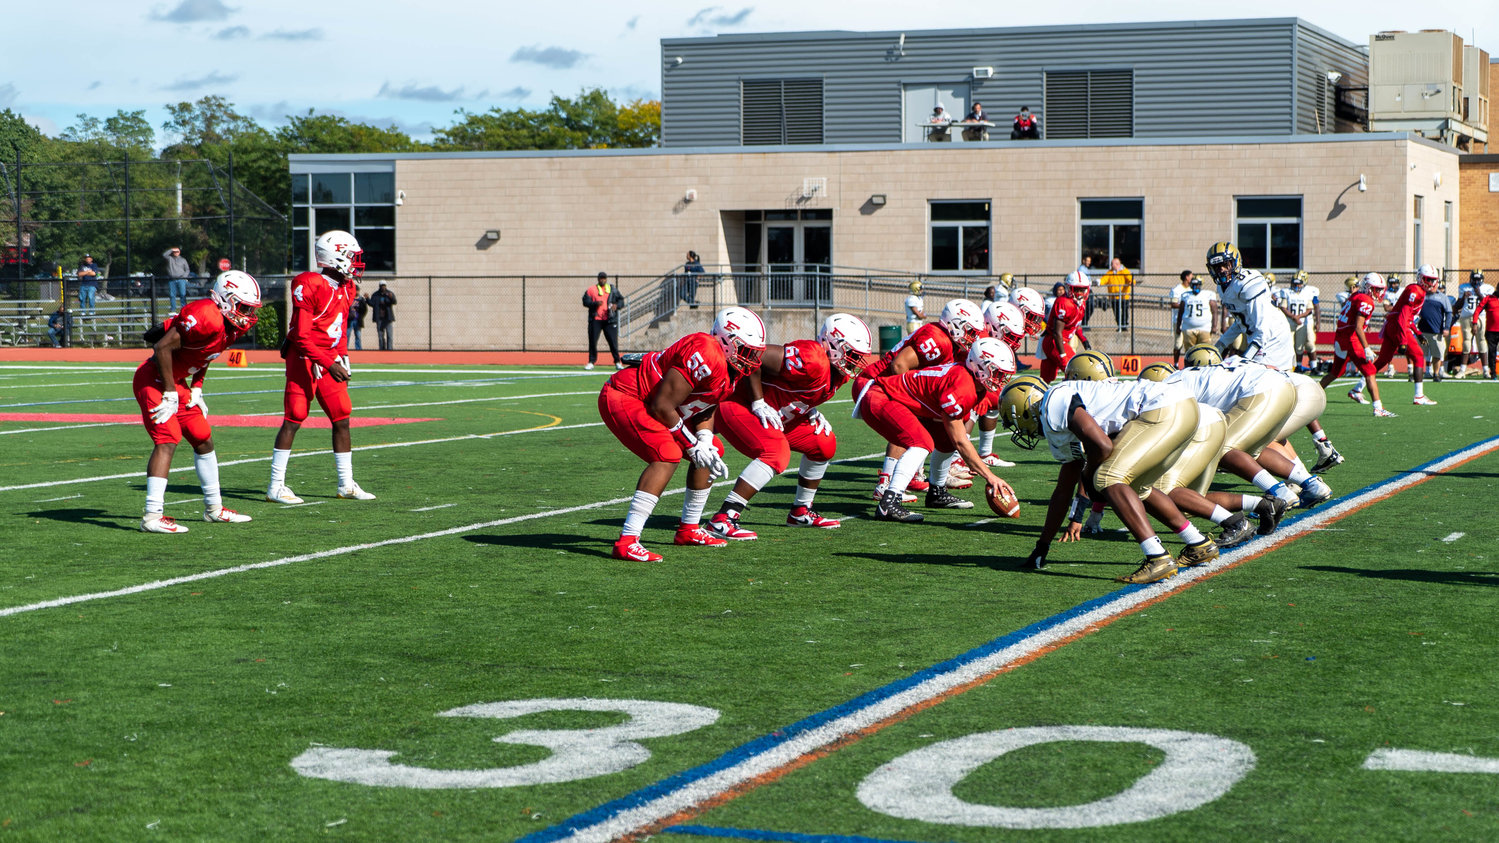 The Freeport High School football team defeated Baldwin 54-13 during their homecoming celebrations on Oct. 12.